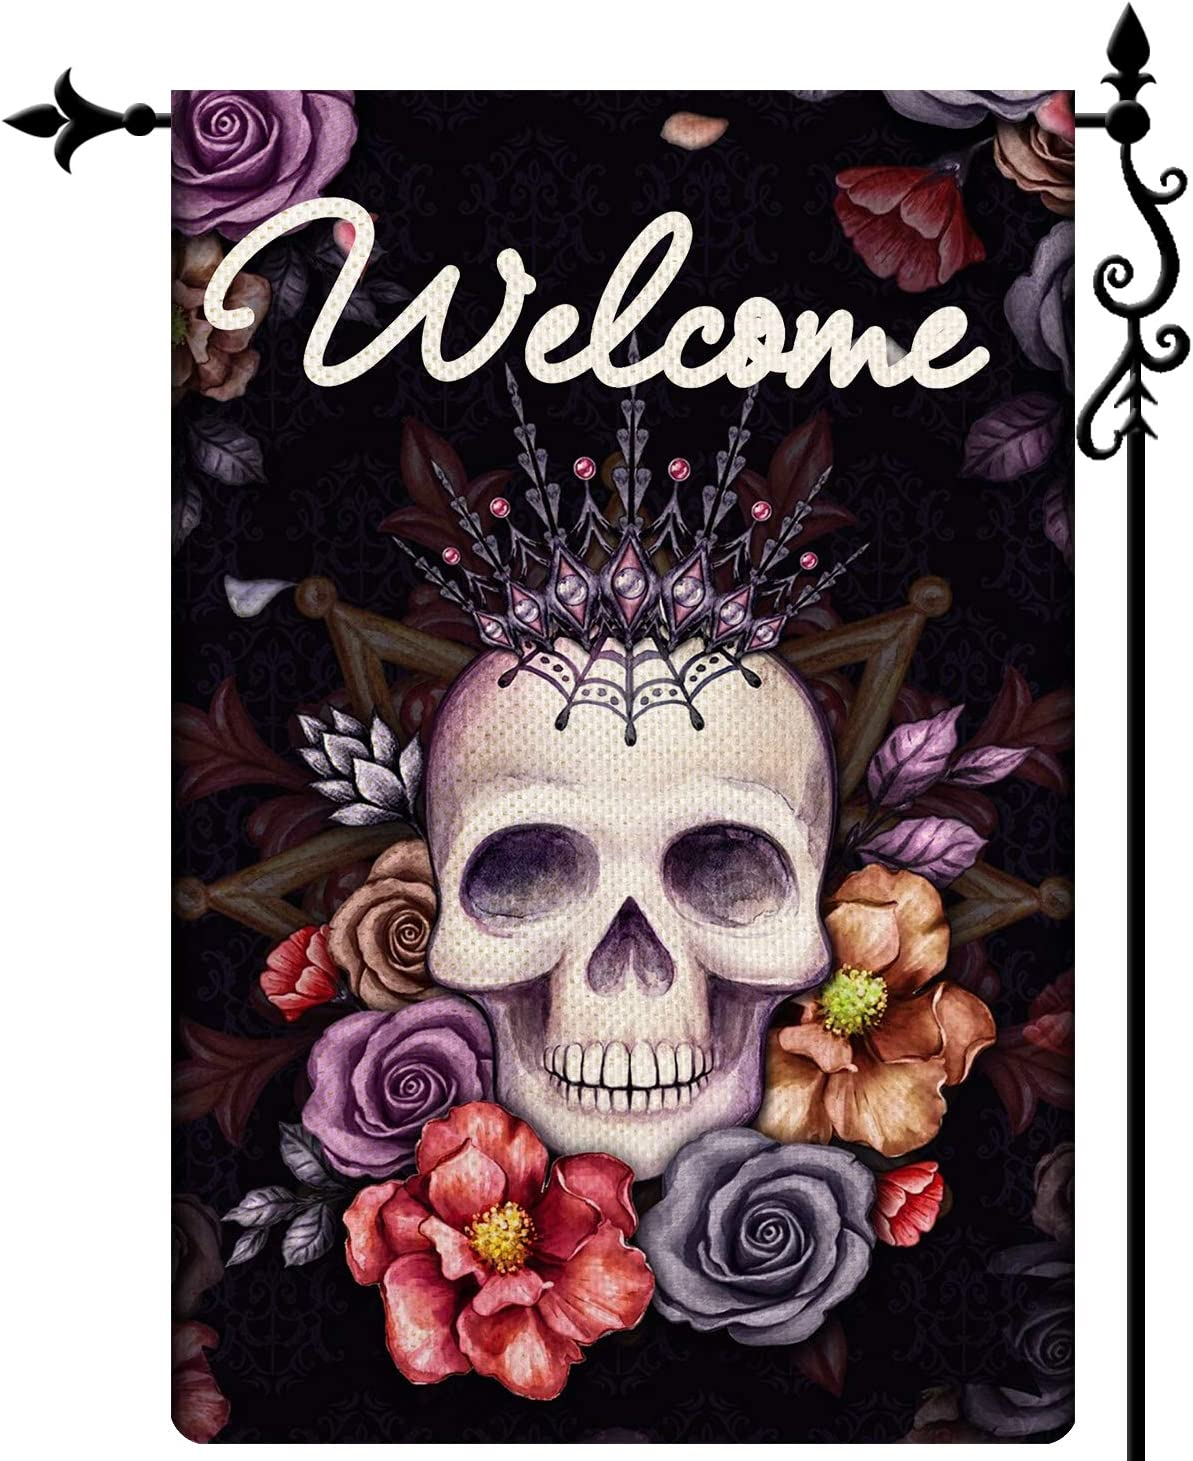 Coskaka Sugar Roes Flowers Skulls Spring Welcome Garden Flag, Double Sided Welcome Seasonal Burlap House Flags, Yard Signs Farm Home Outdoor Decor 12.5 x 18